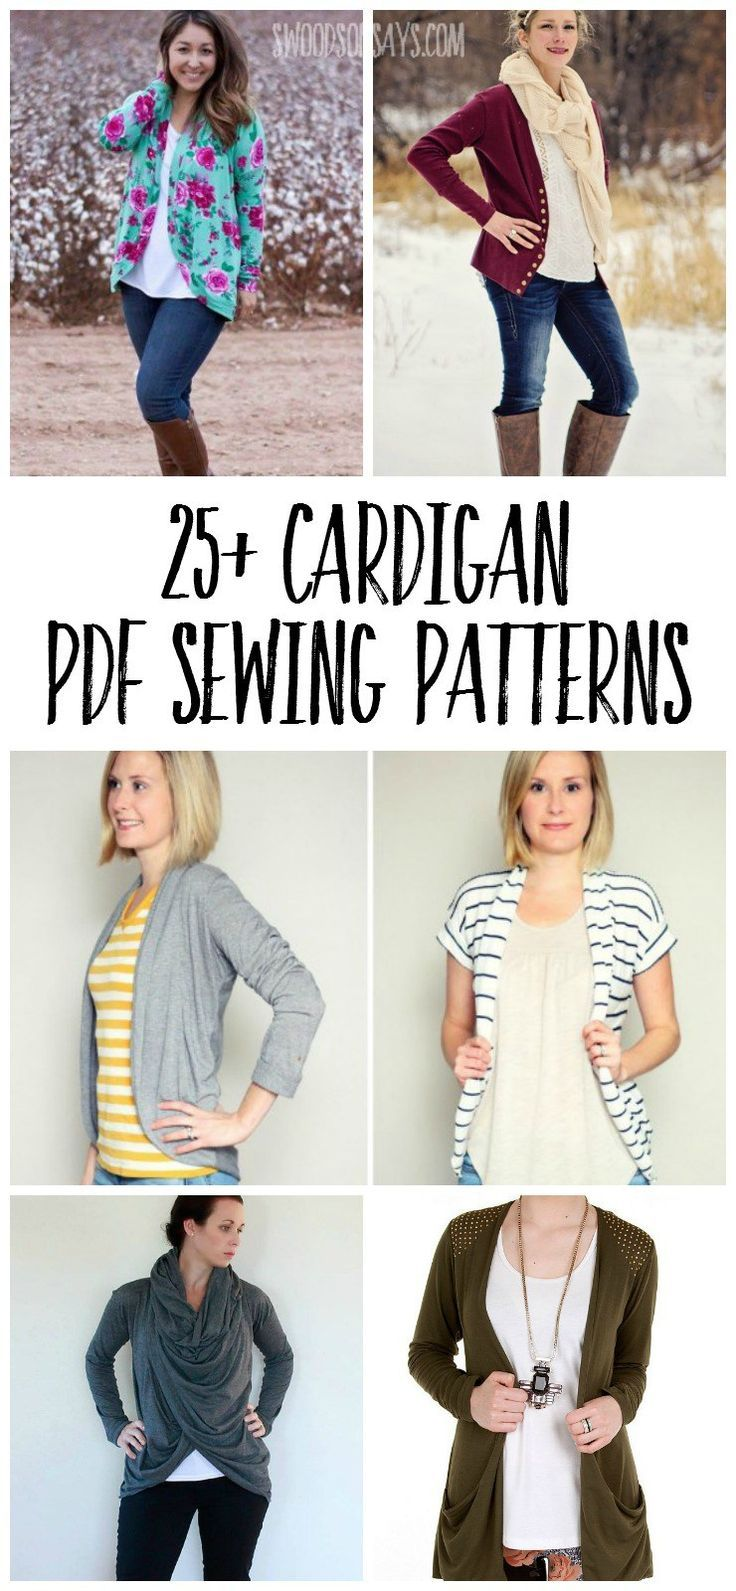 Pdf Sewing Patterns New Decorating Design